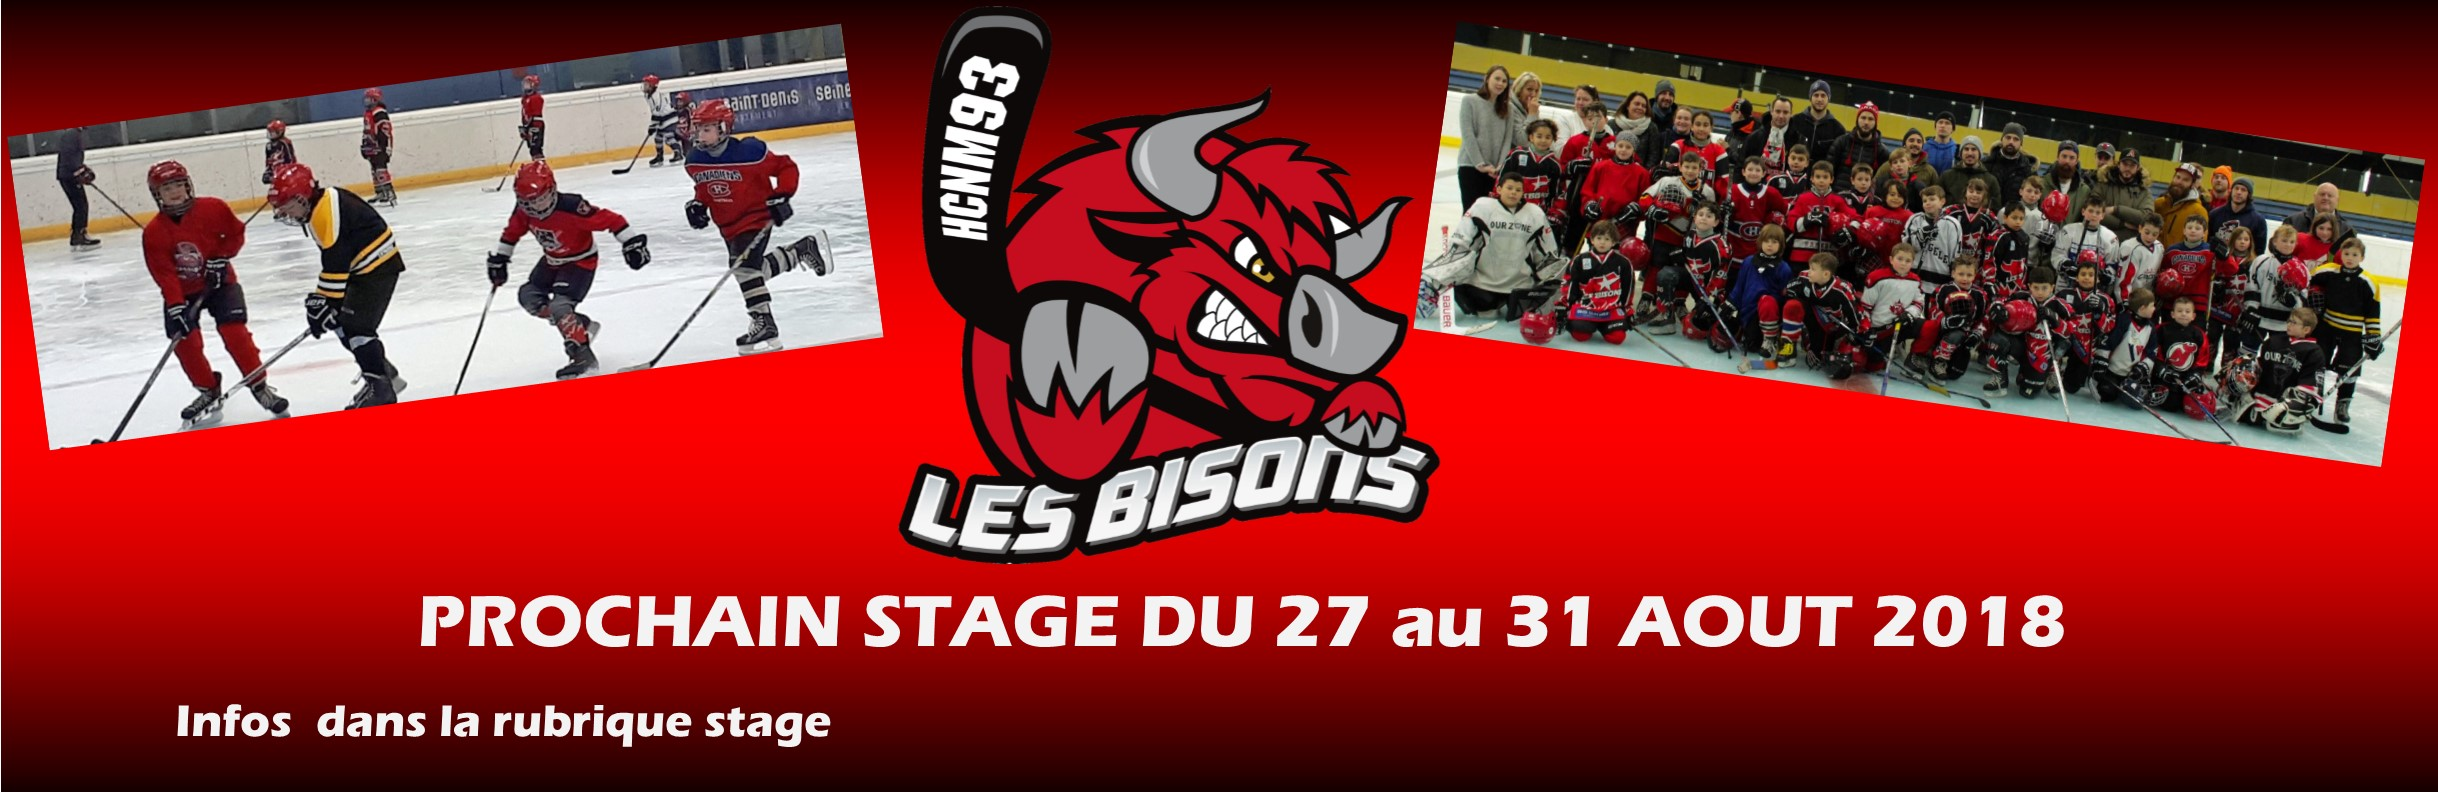 STAGE-banniere-aout-2018